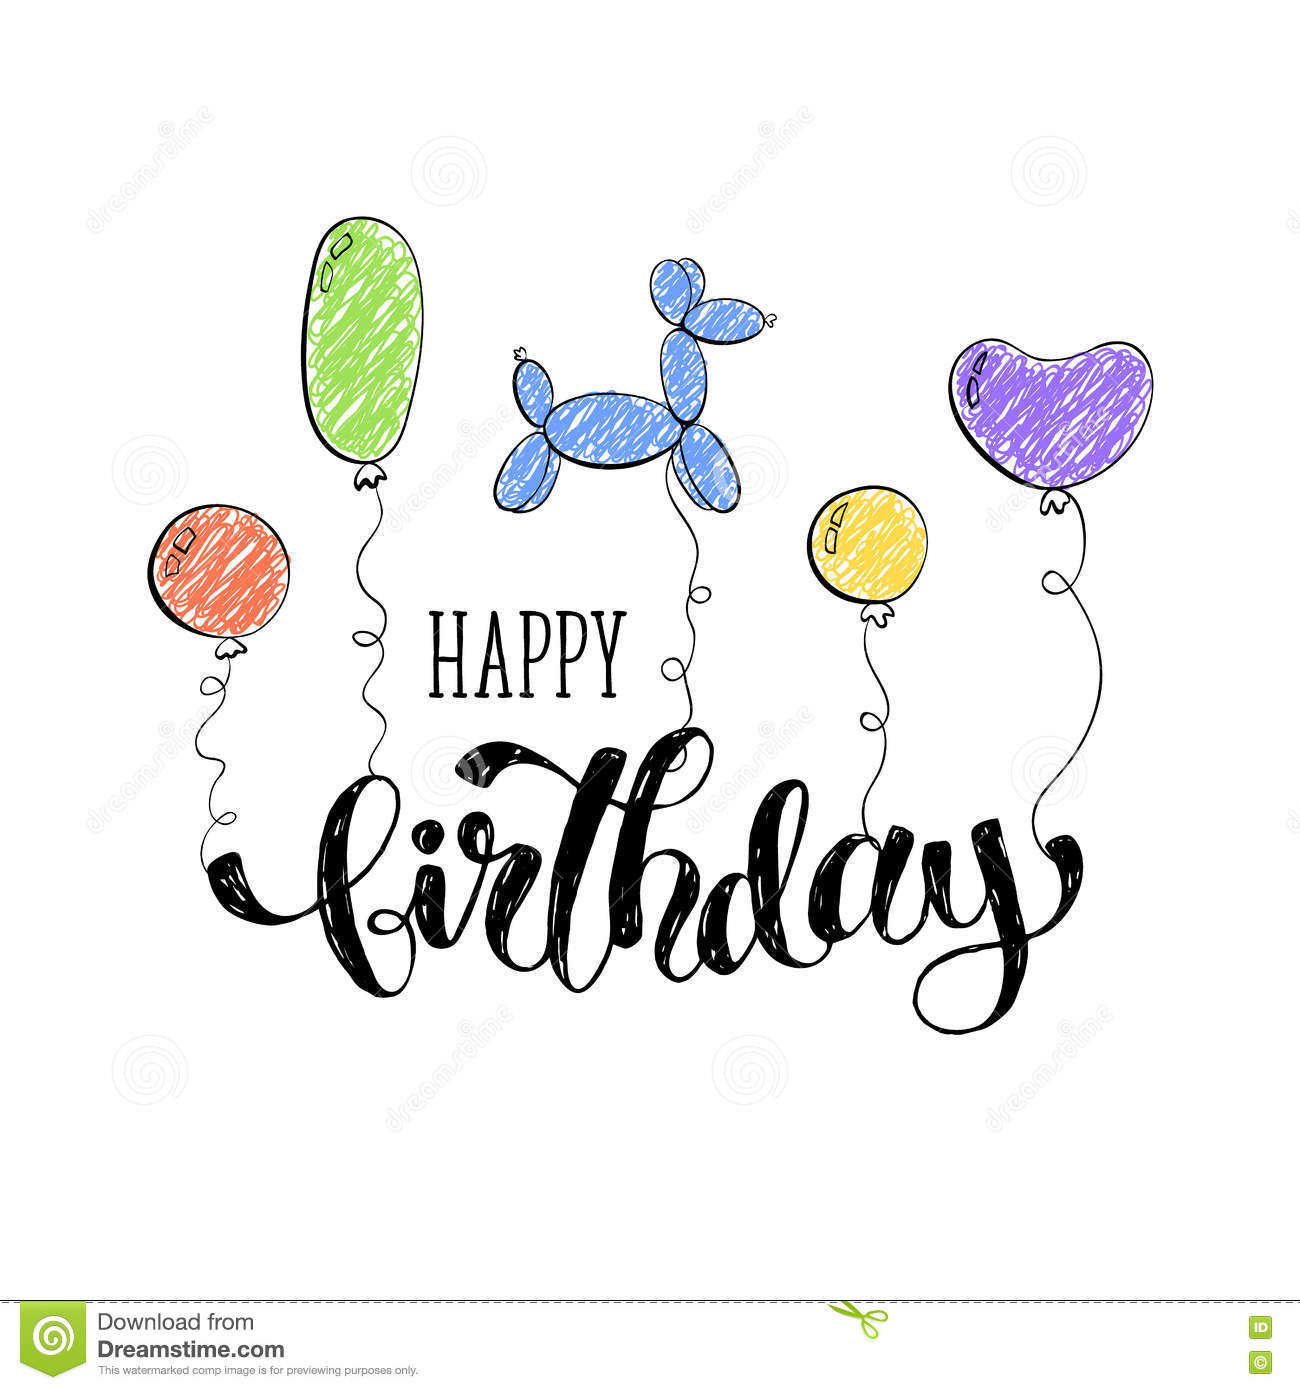 Happy Birthday Greeting Card Hand Drawn Calligraphy On White Background Balloons Vector Illustration In Cartoon Style